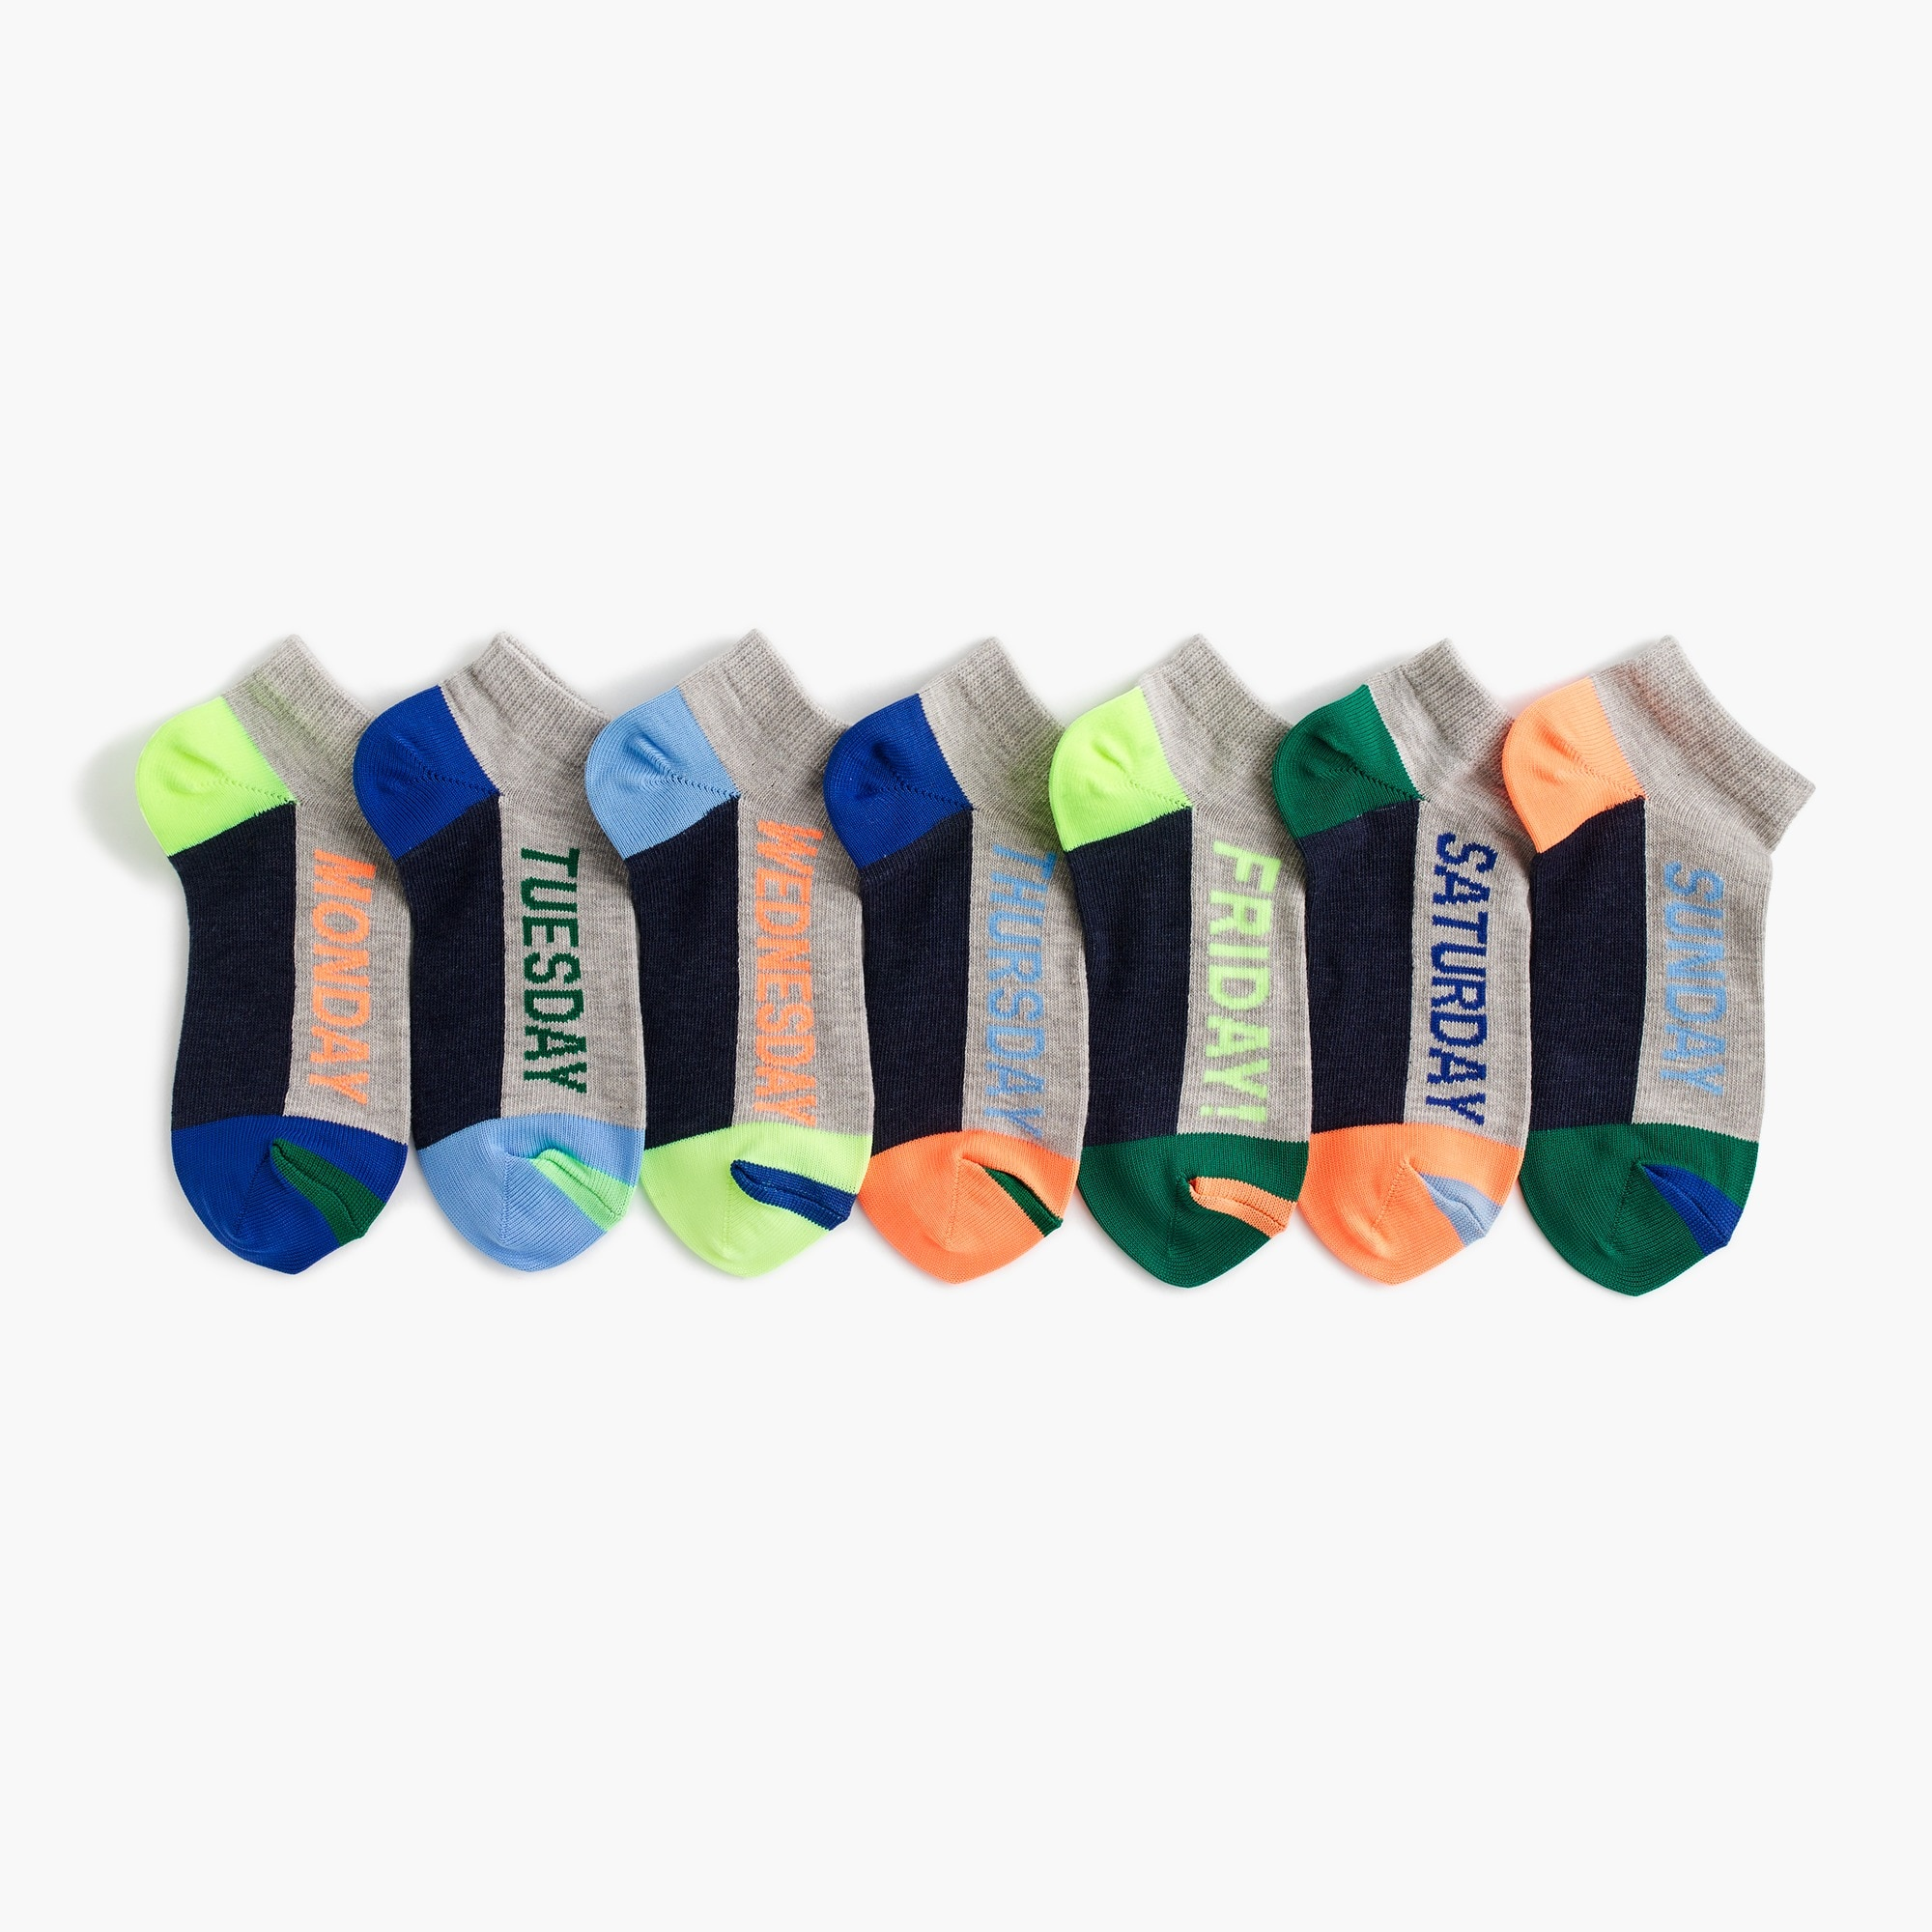 Boys' days of the week socks seven-pack boy accessories c